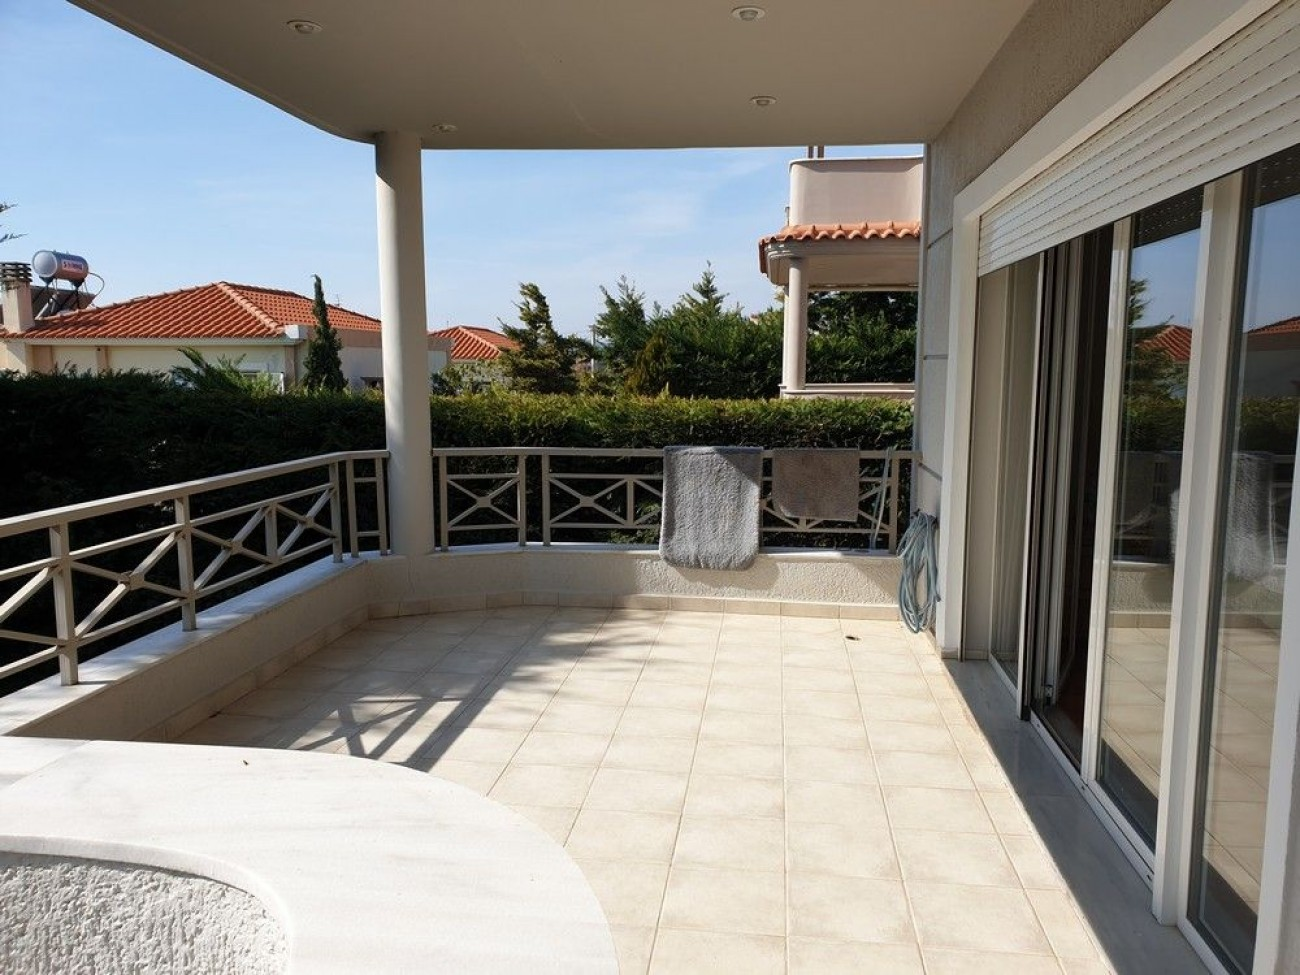 House for Sale in Kalivia Thorikou, Rest of Attica, Greece